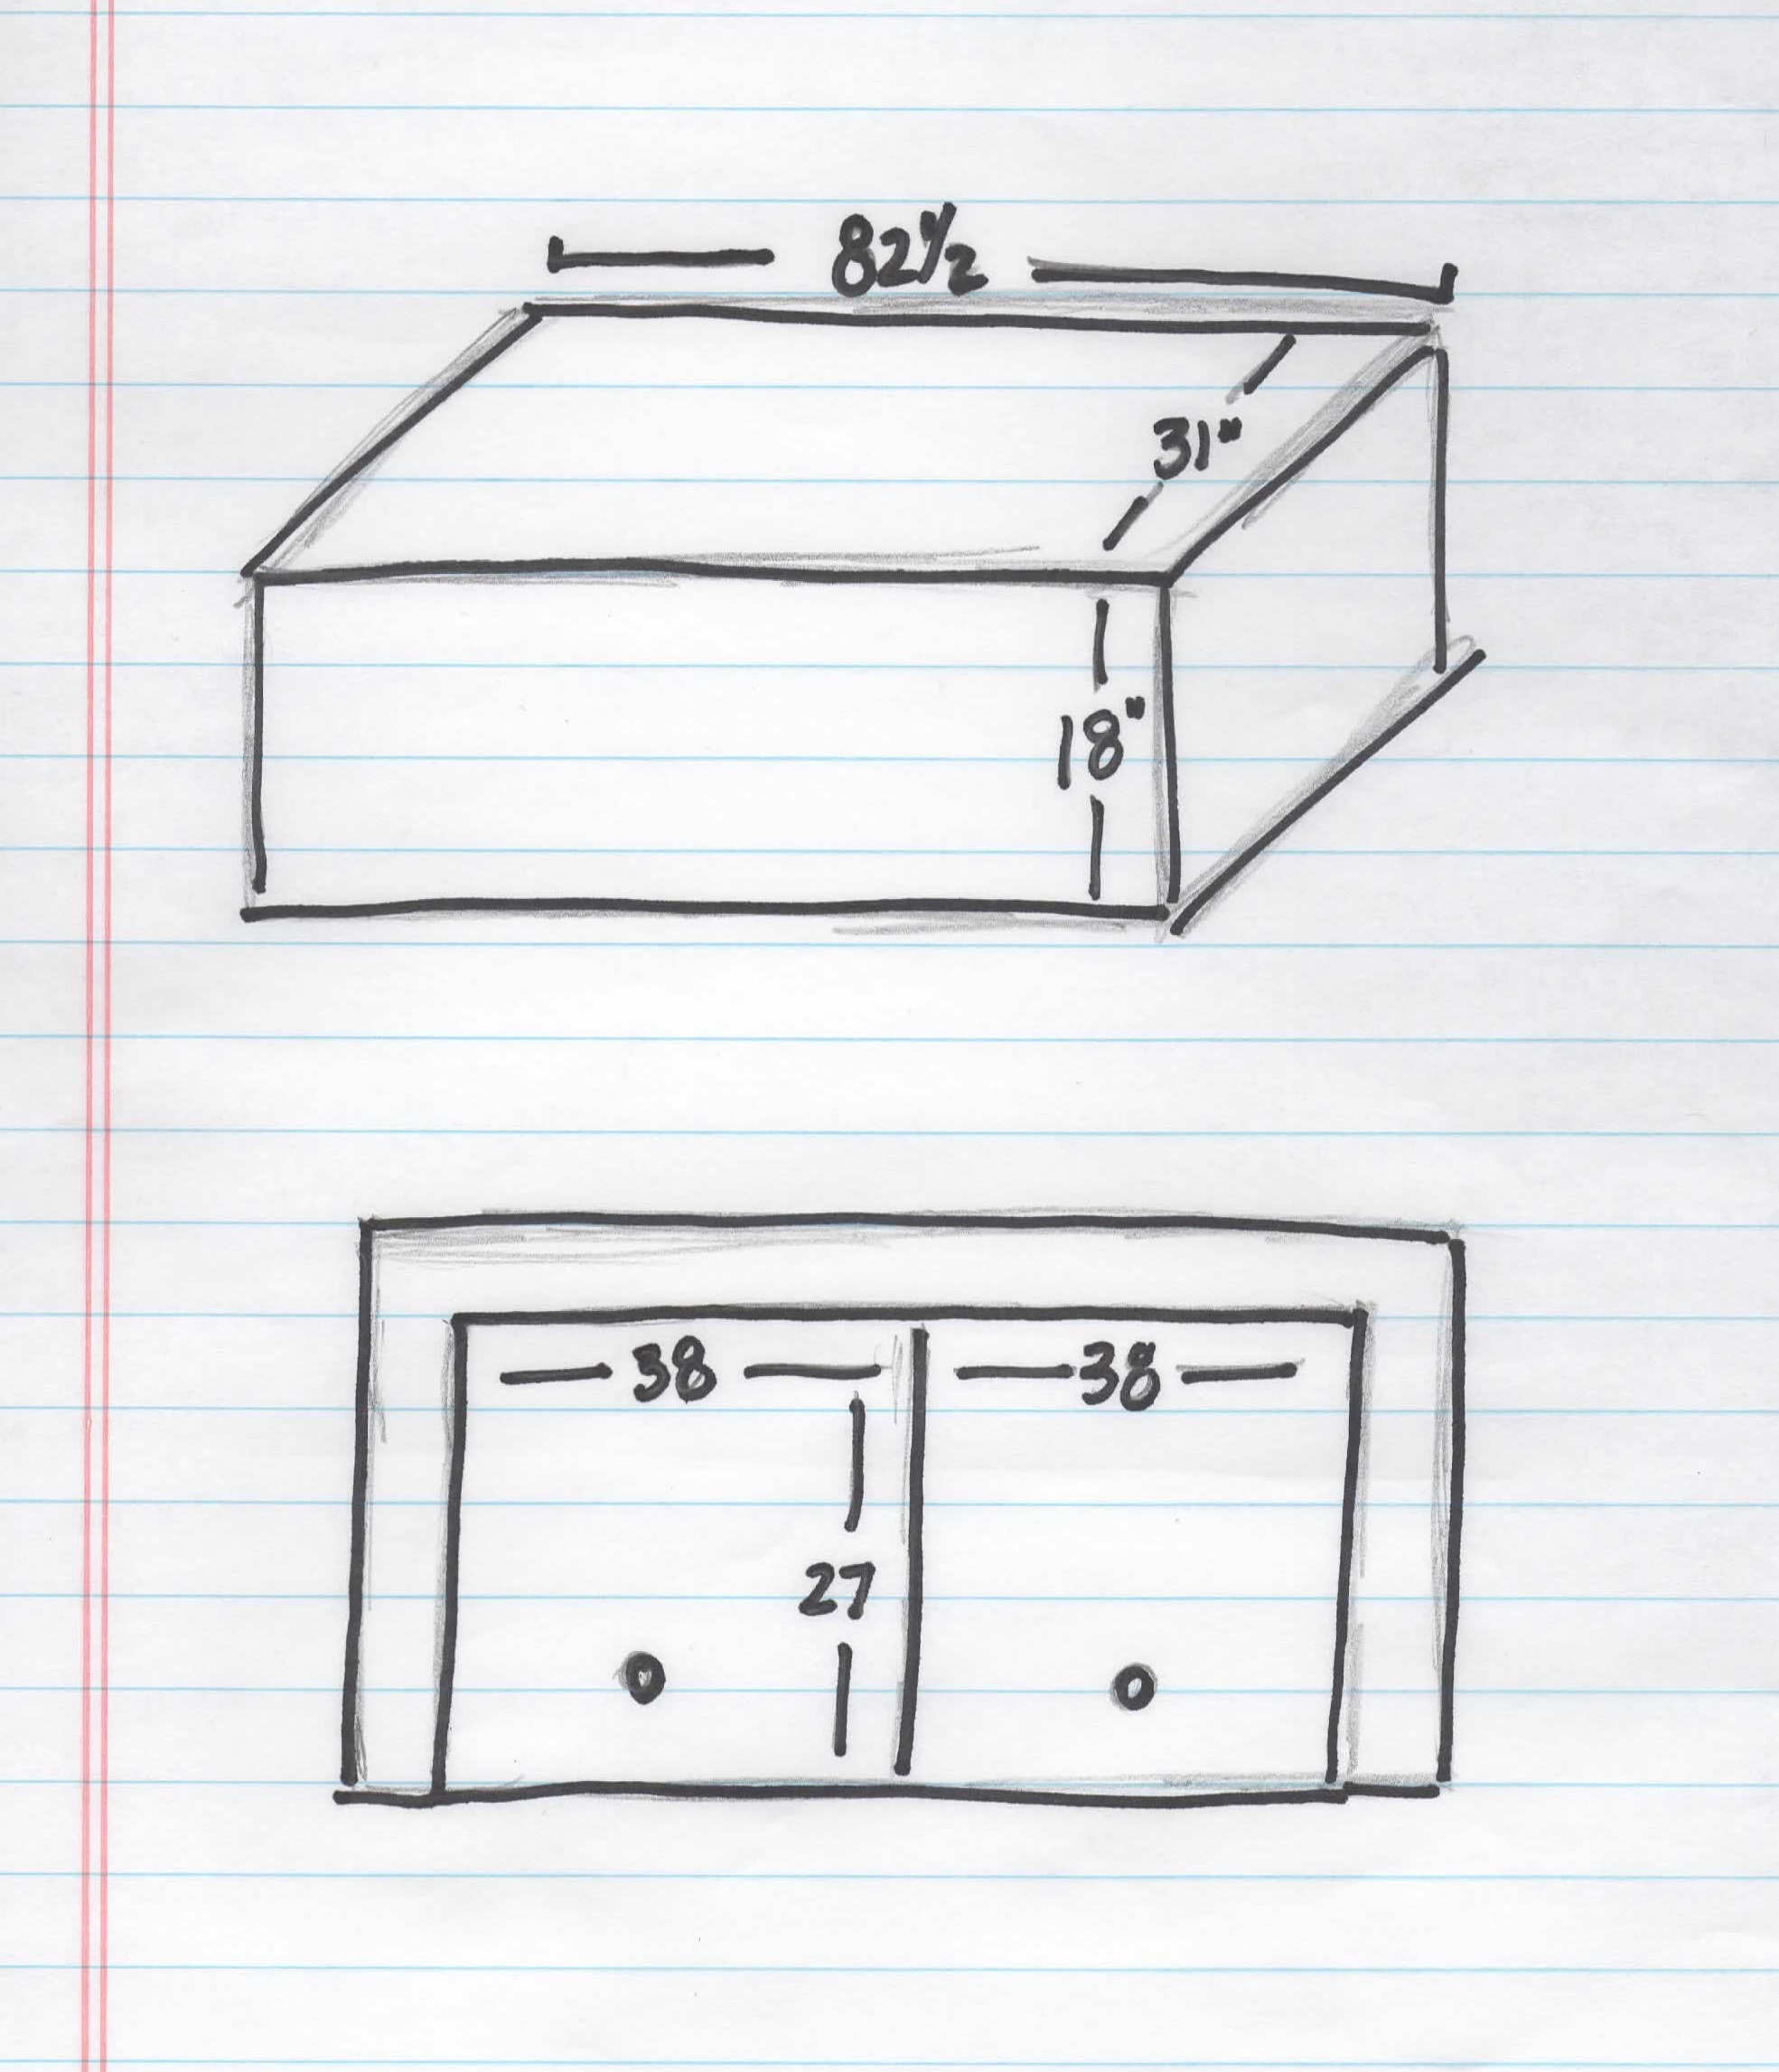 Banquette Seating Dimensions: Life's A Banquette…